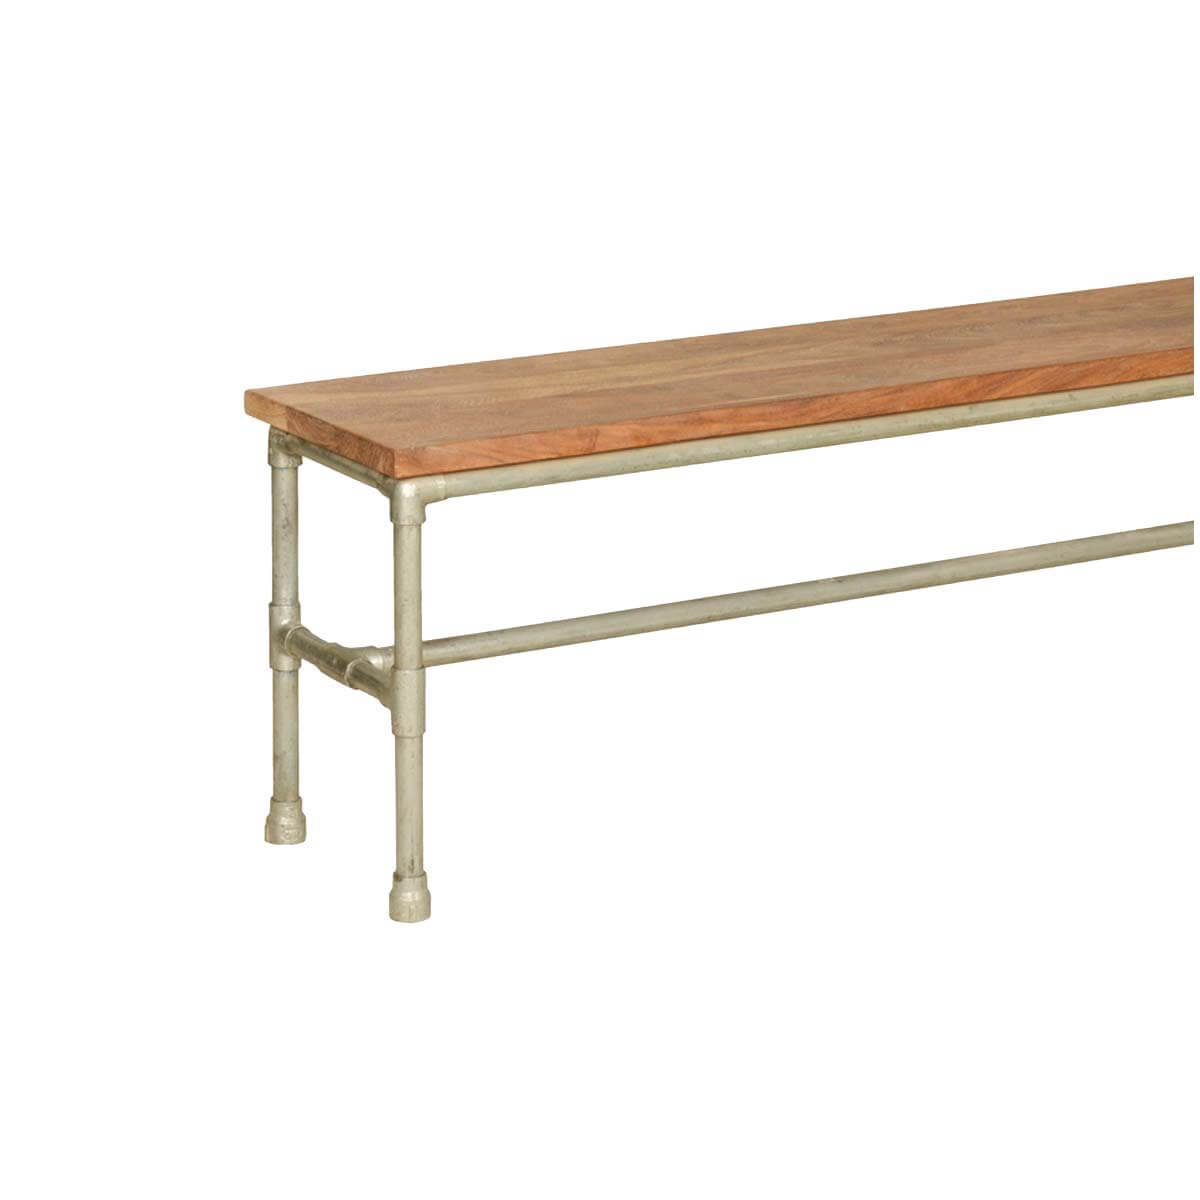 Ciera Acacia Wood Iron Industrial Narrow Bench